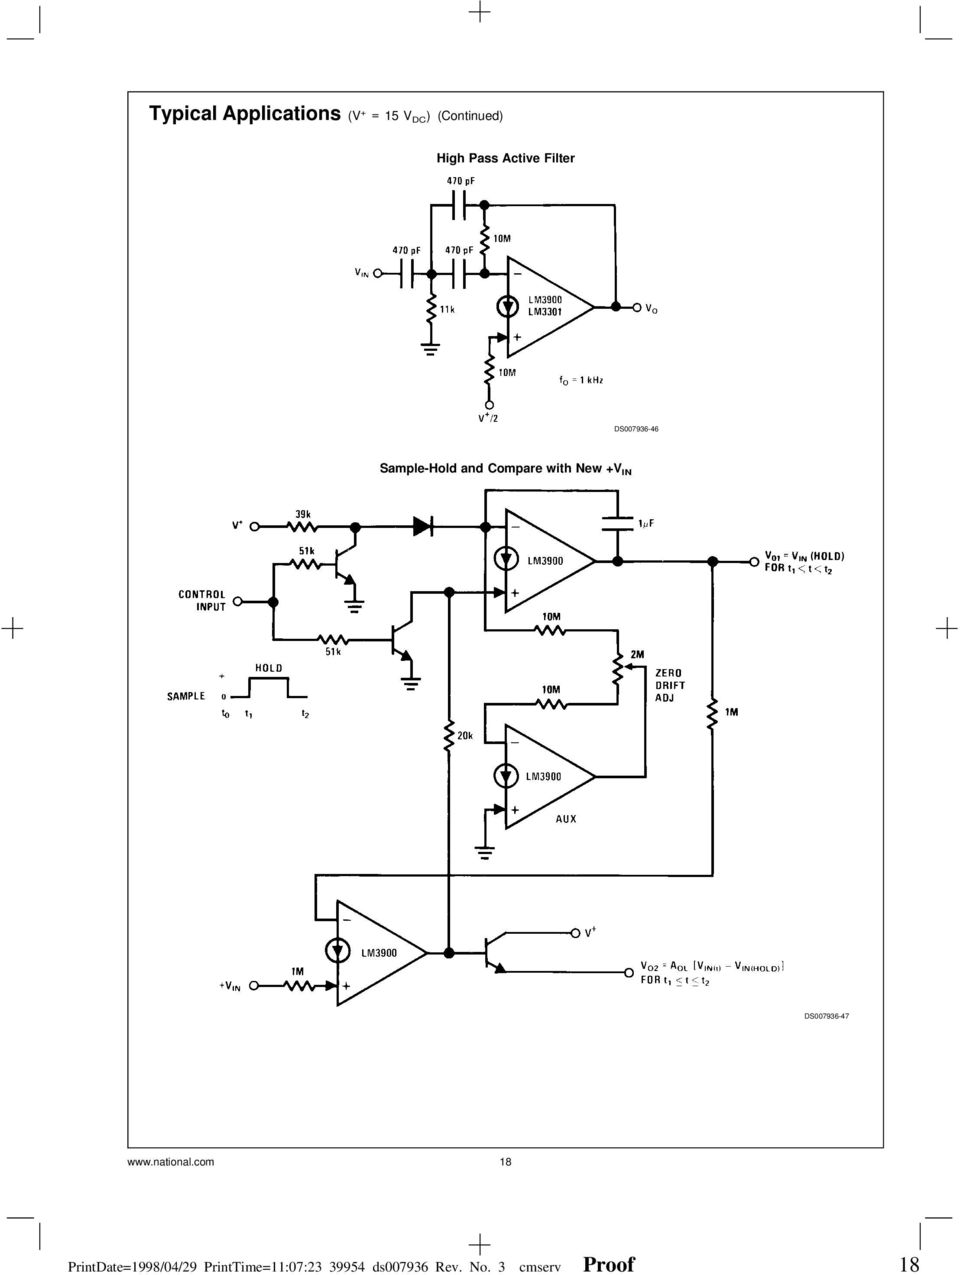 Lm2900lm3301lm3900 Lm2900 Lm3900 Lm3301 Quad Amplifiers Channel Audio Mixer Circuit Using Simple Schematic Diagram Ds007936 47 National